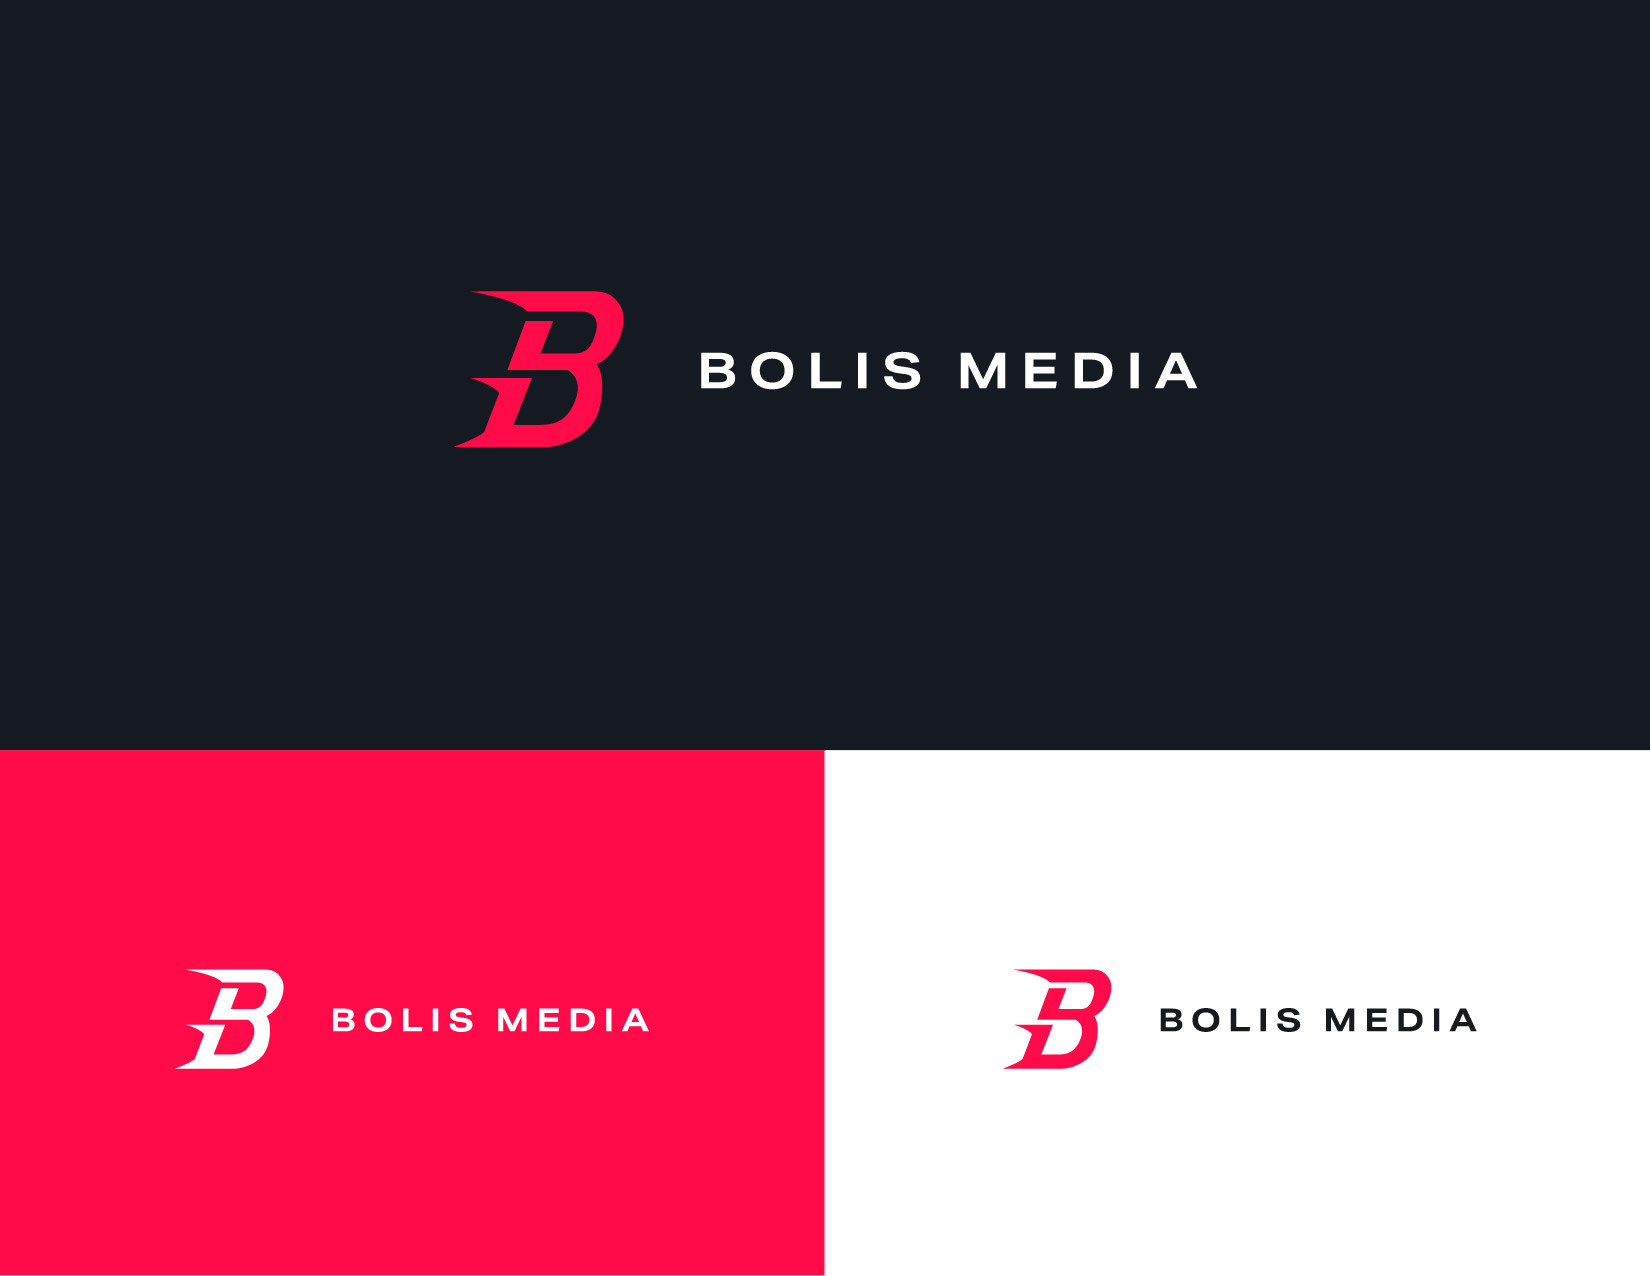 Logo design and branding for Bolis Media, and digital marketing agency specializing in influencer marketing and social media advertising. Lil Pump and Gunna, TikTok promotion strategies. James Cannella Marketing, Design, and Artificial Intelligence Consulting Services